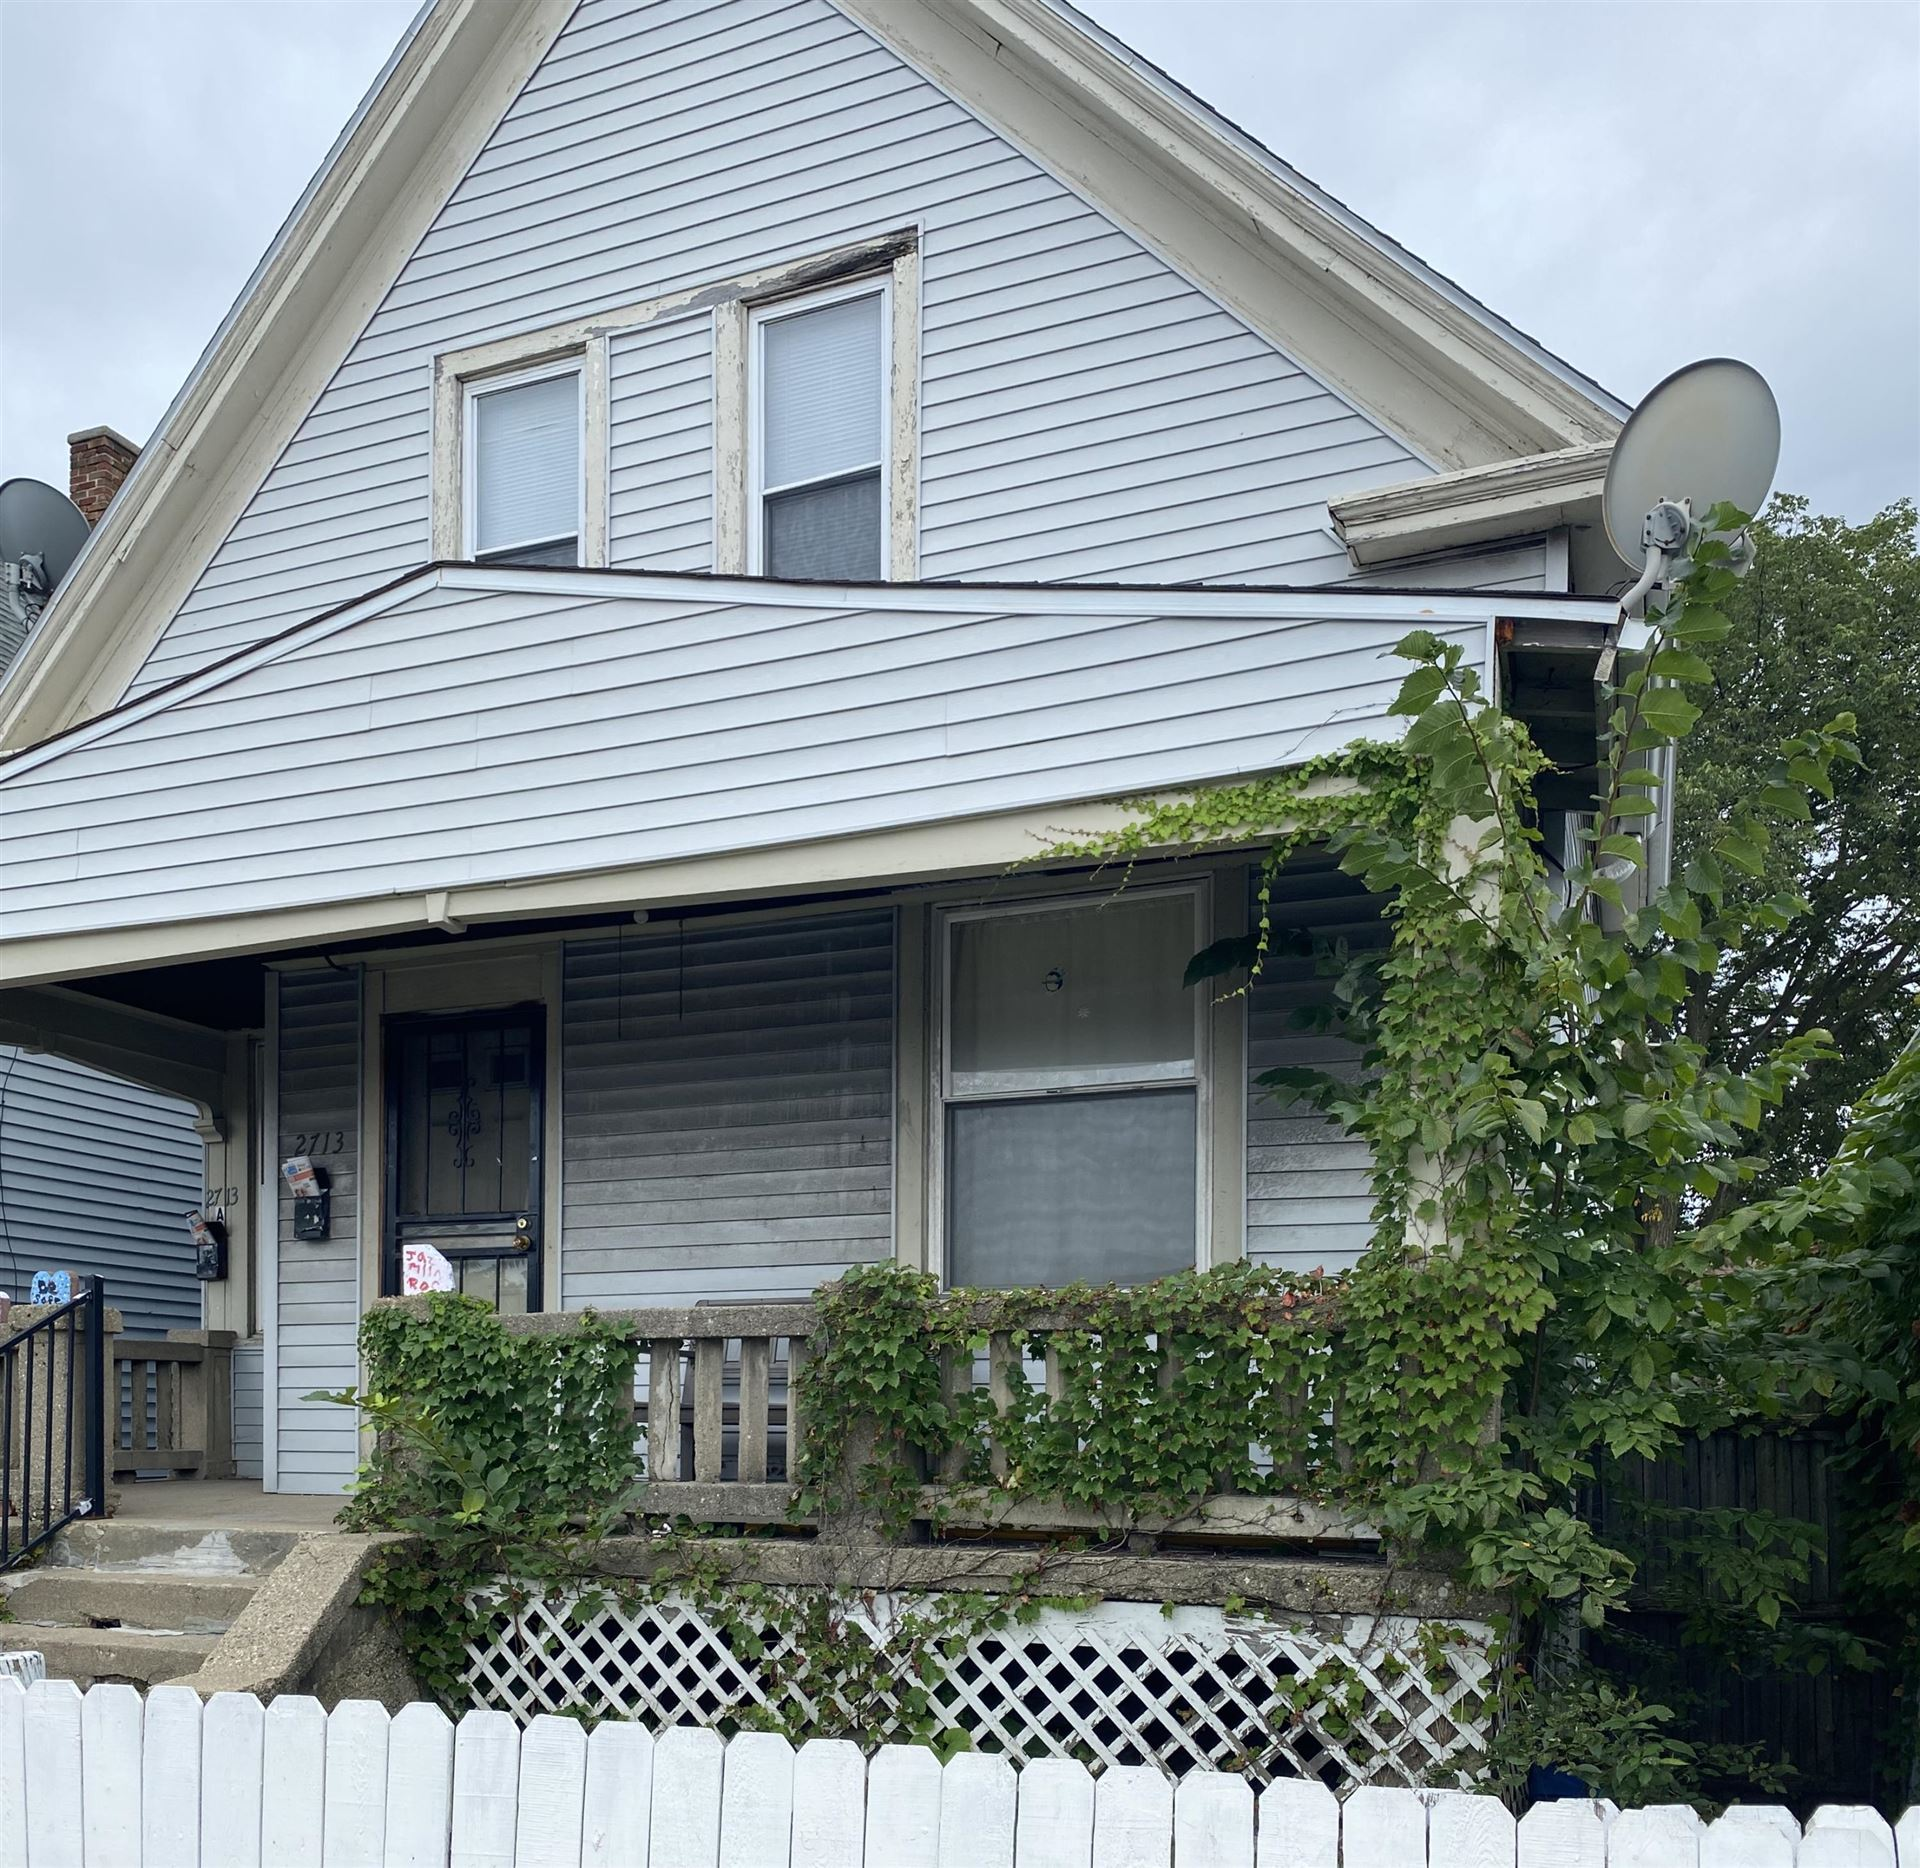 2713 W Lincoln Ave, Milwaukee, WI 53215 - #: 1707548